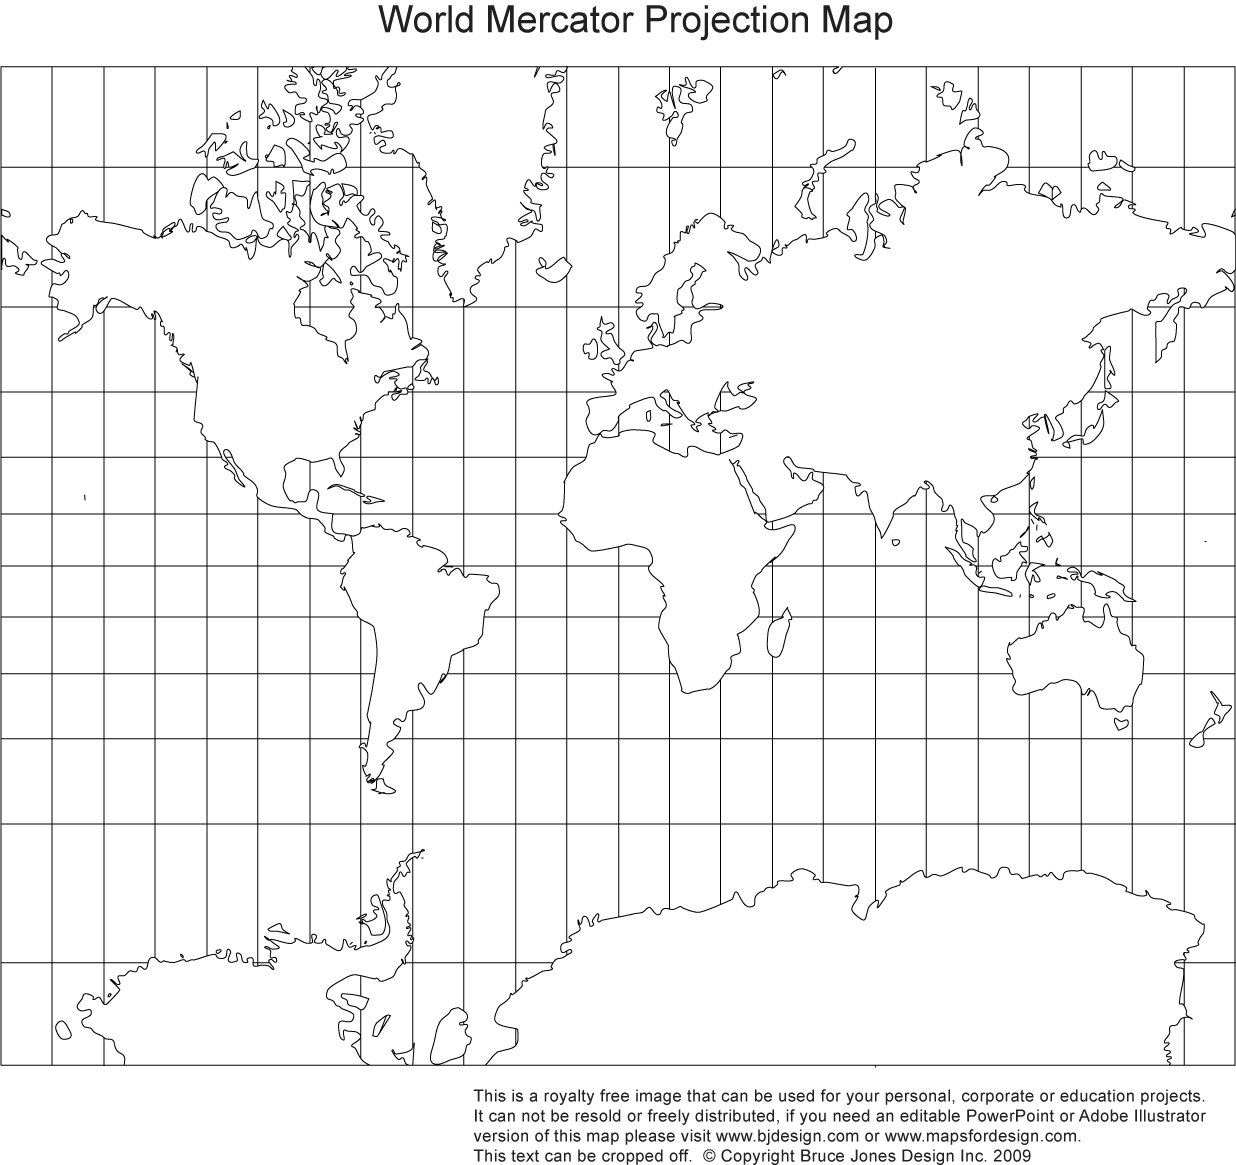 Pz c blank world map third learning outcome we sell lots of editable powerpoint and illustrator maps on our editable gumiabroncs Gallery